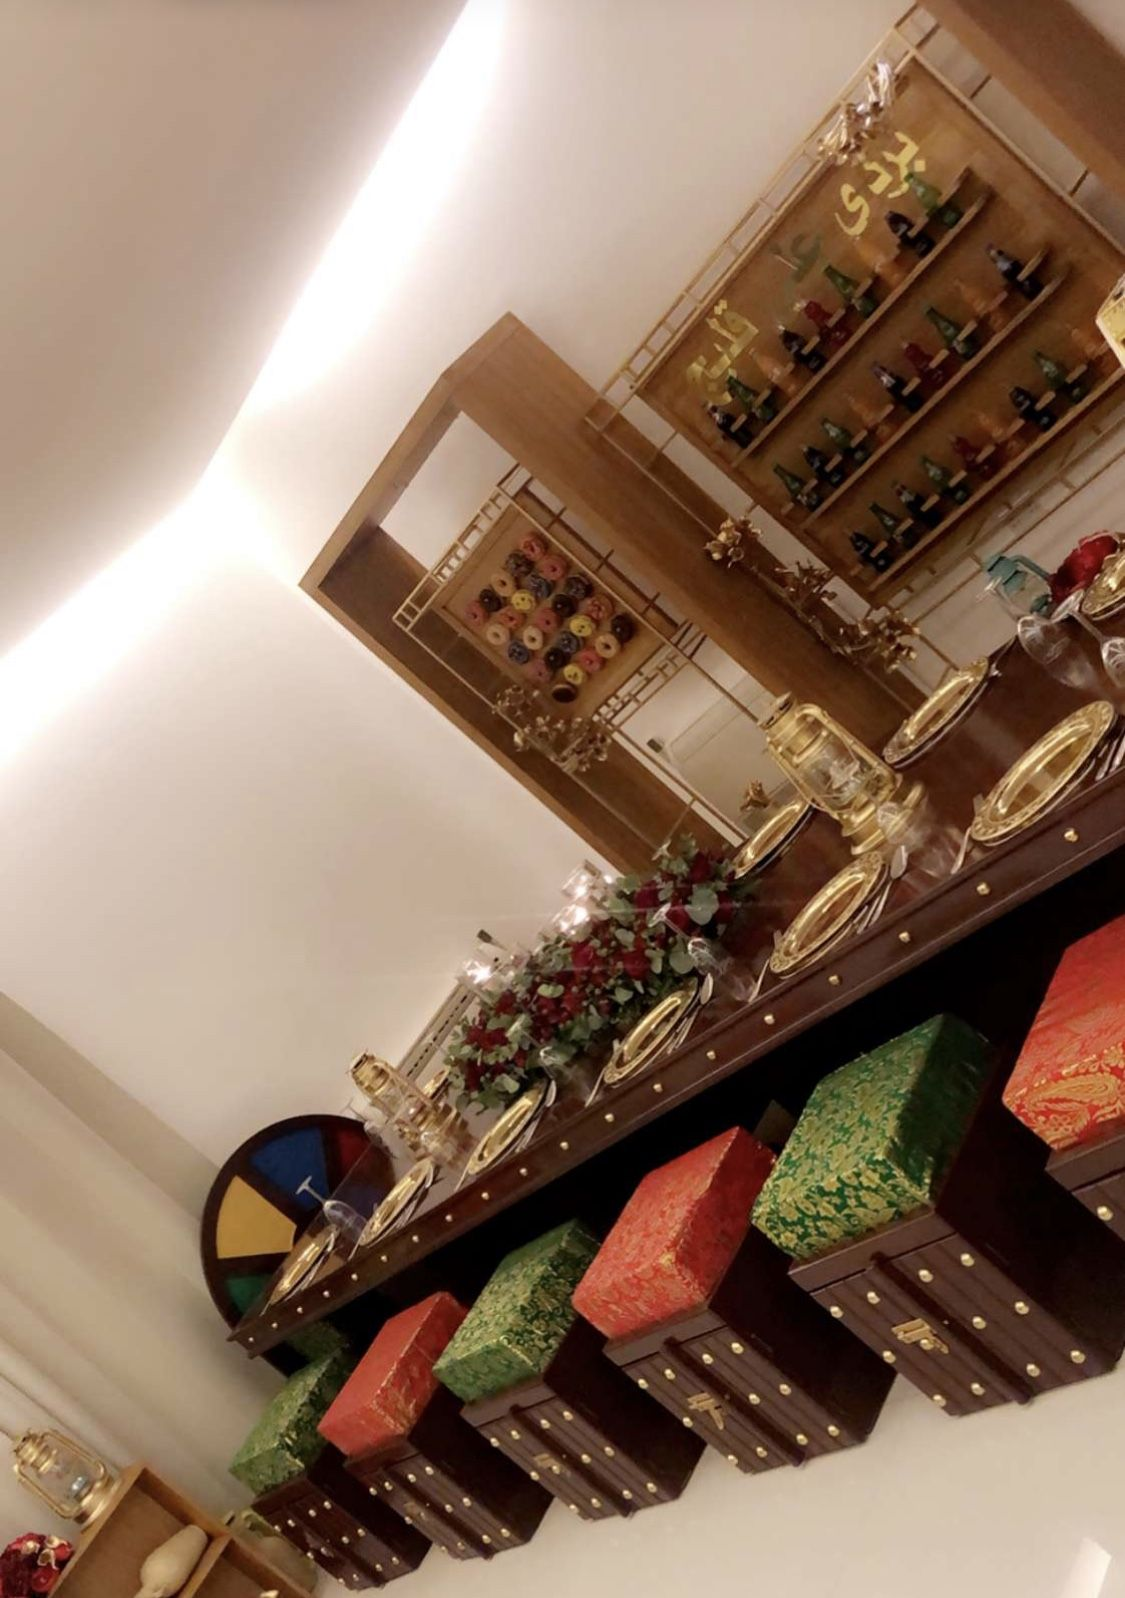 Pin by bnt almalki on Decorations   Decor, Wine rack, Home ...